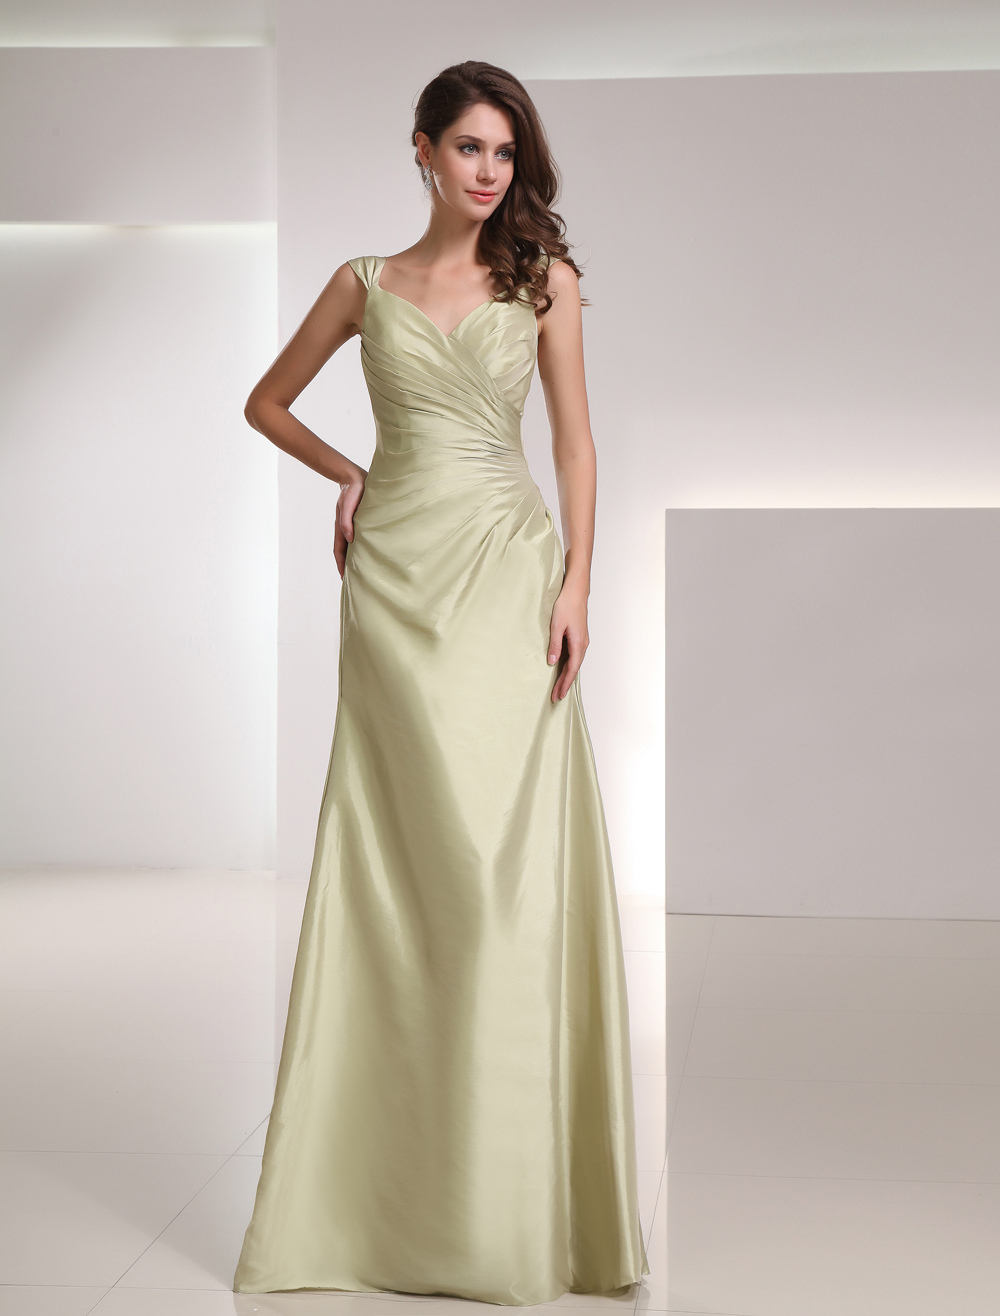 1940s Style Prom Dresses, Formal Dresses, Evening Gowns